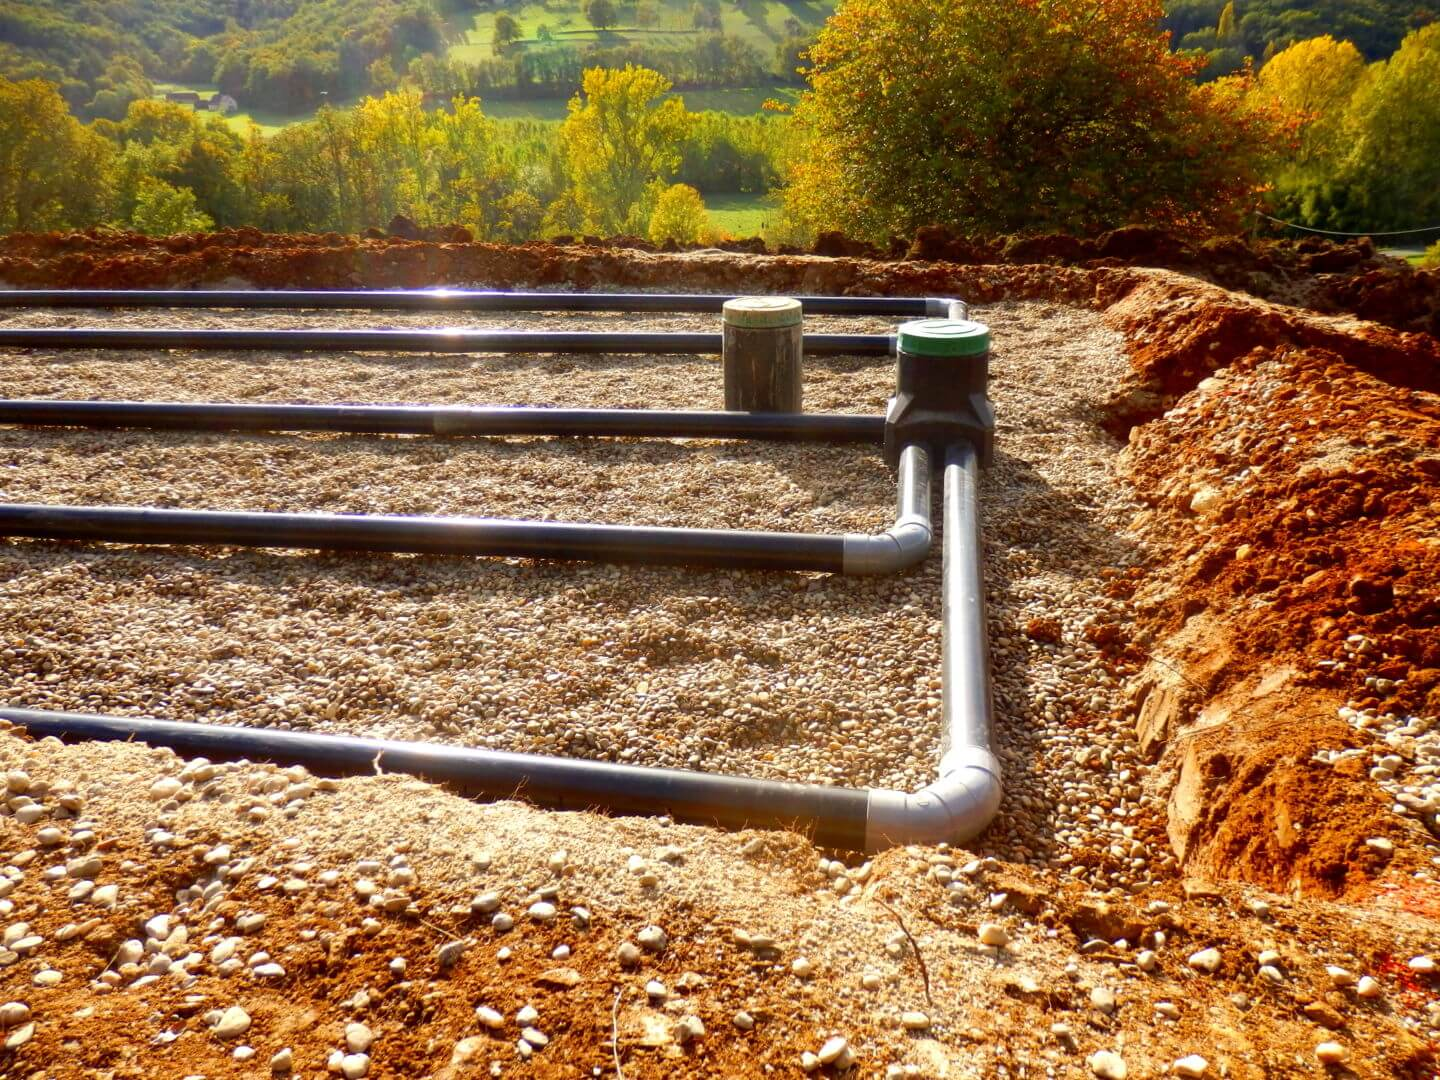 Municipal and Community Septic Systems-Fresno Septic Tank Services, Installation, & Repairs-We offer Septic Service & Repairs, Septic Tank Installations, Septic Tank Cleaning, Commercial, Septic System, Drain Cleaning, Line Snaking, Portable Toilet, Grease Trap Pumping & Cleaning, Septic Tank Pumping, Sewage Pump, Sewer Line Repair, Septic Tank Replacement, Septic Maintenance, Sewer Line Replacement, Porta Potty Rentals